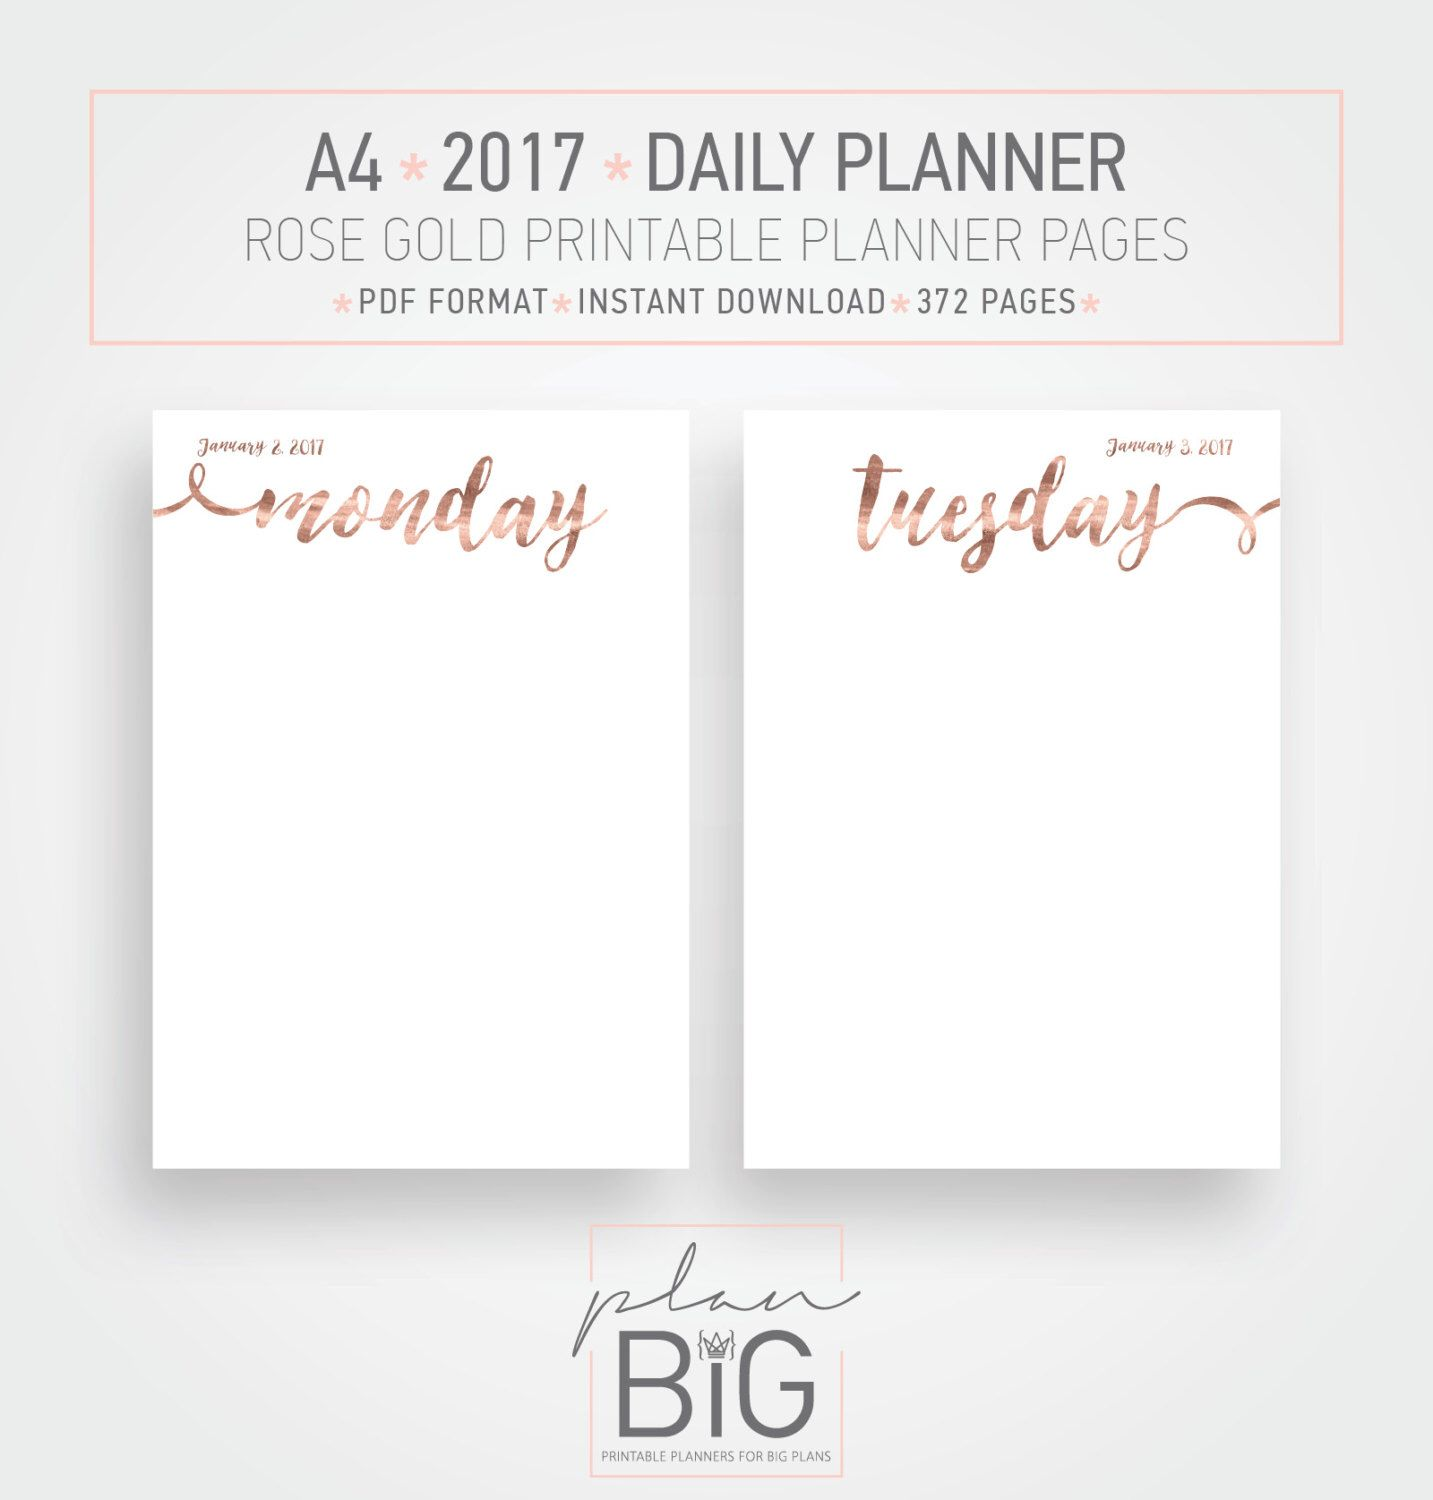 Pin by Kemish Ewell on Day Planner/ Personal Organizer | Pinterest ...